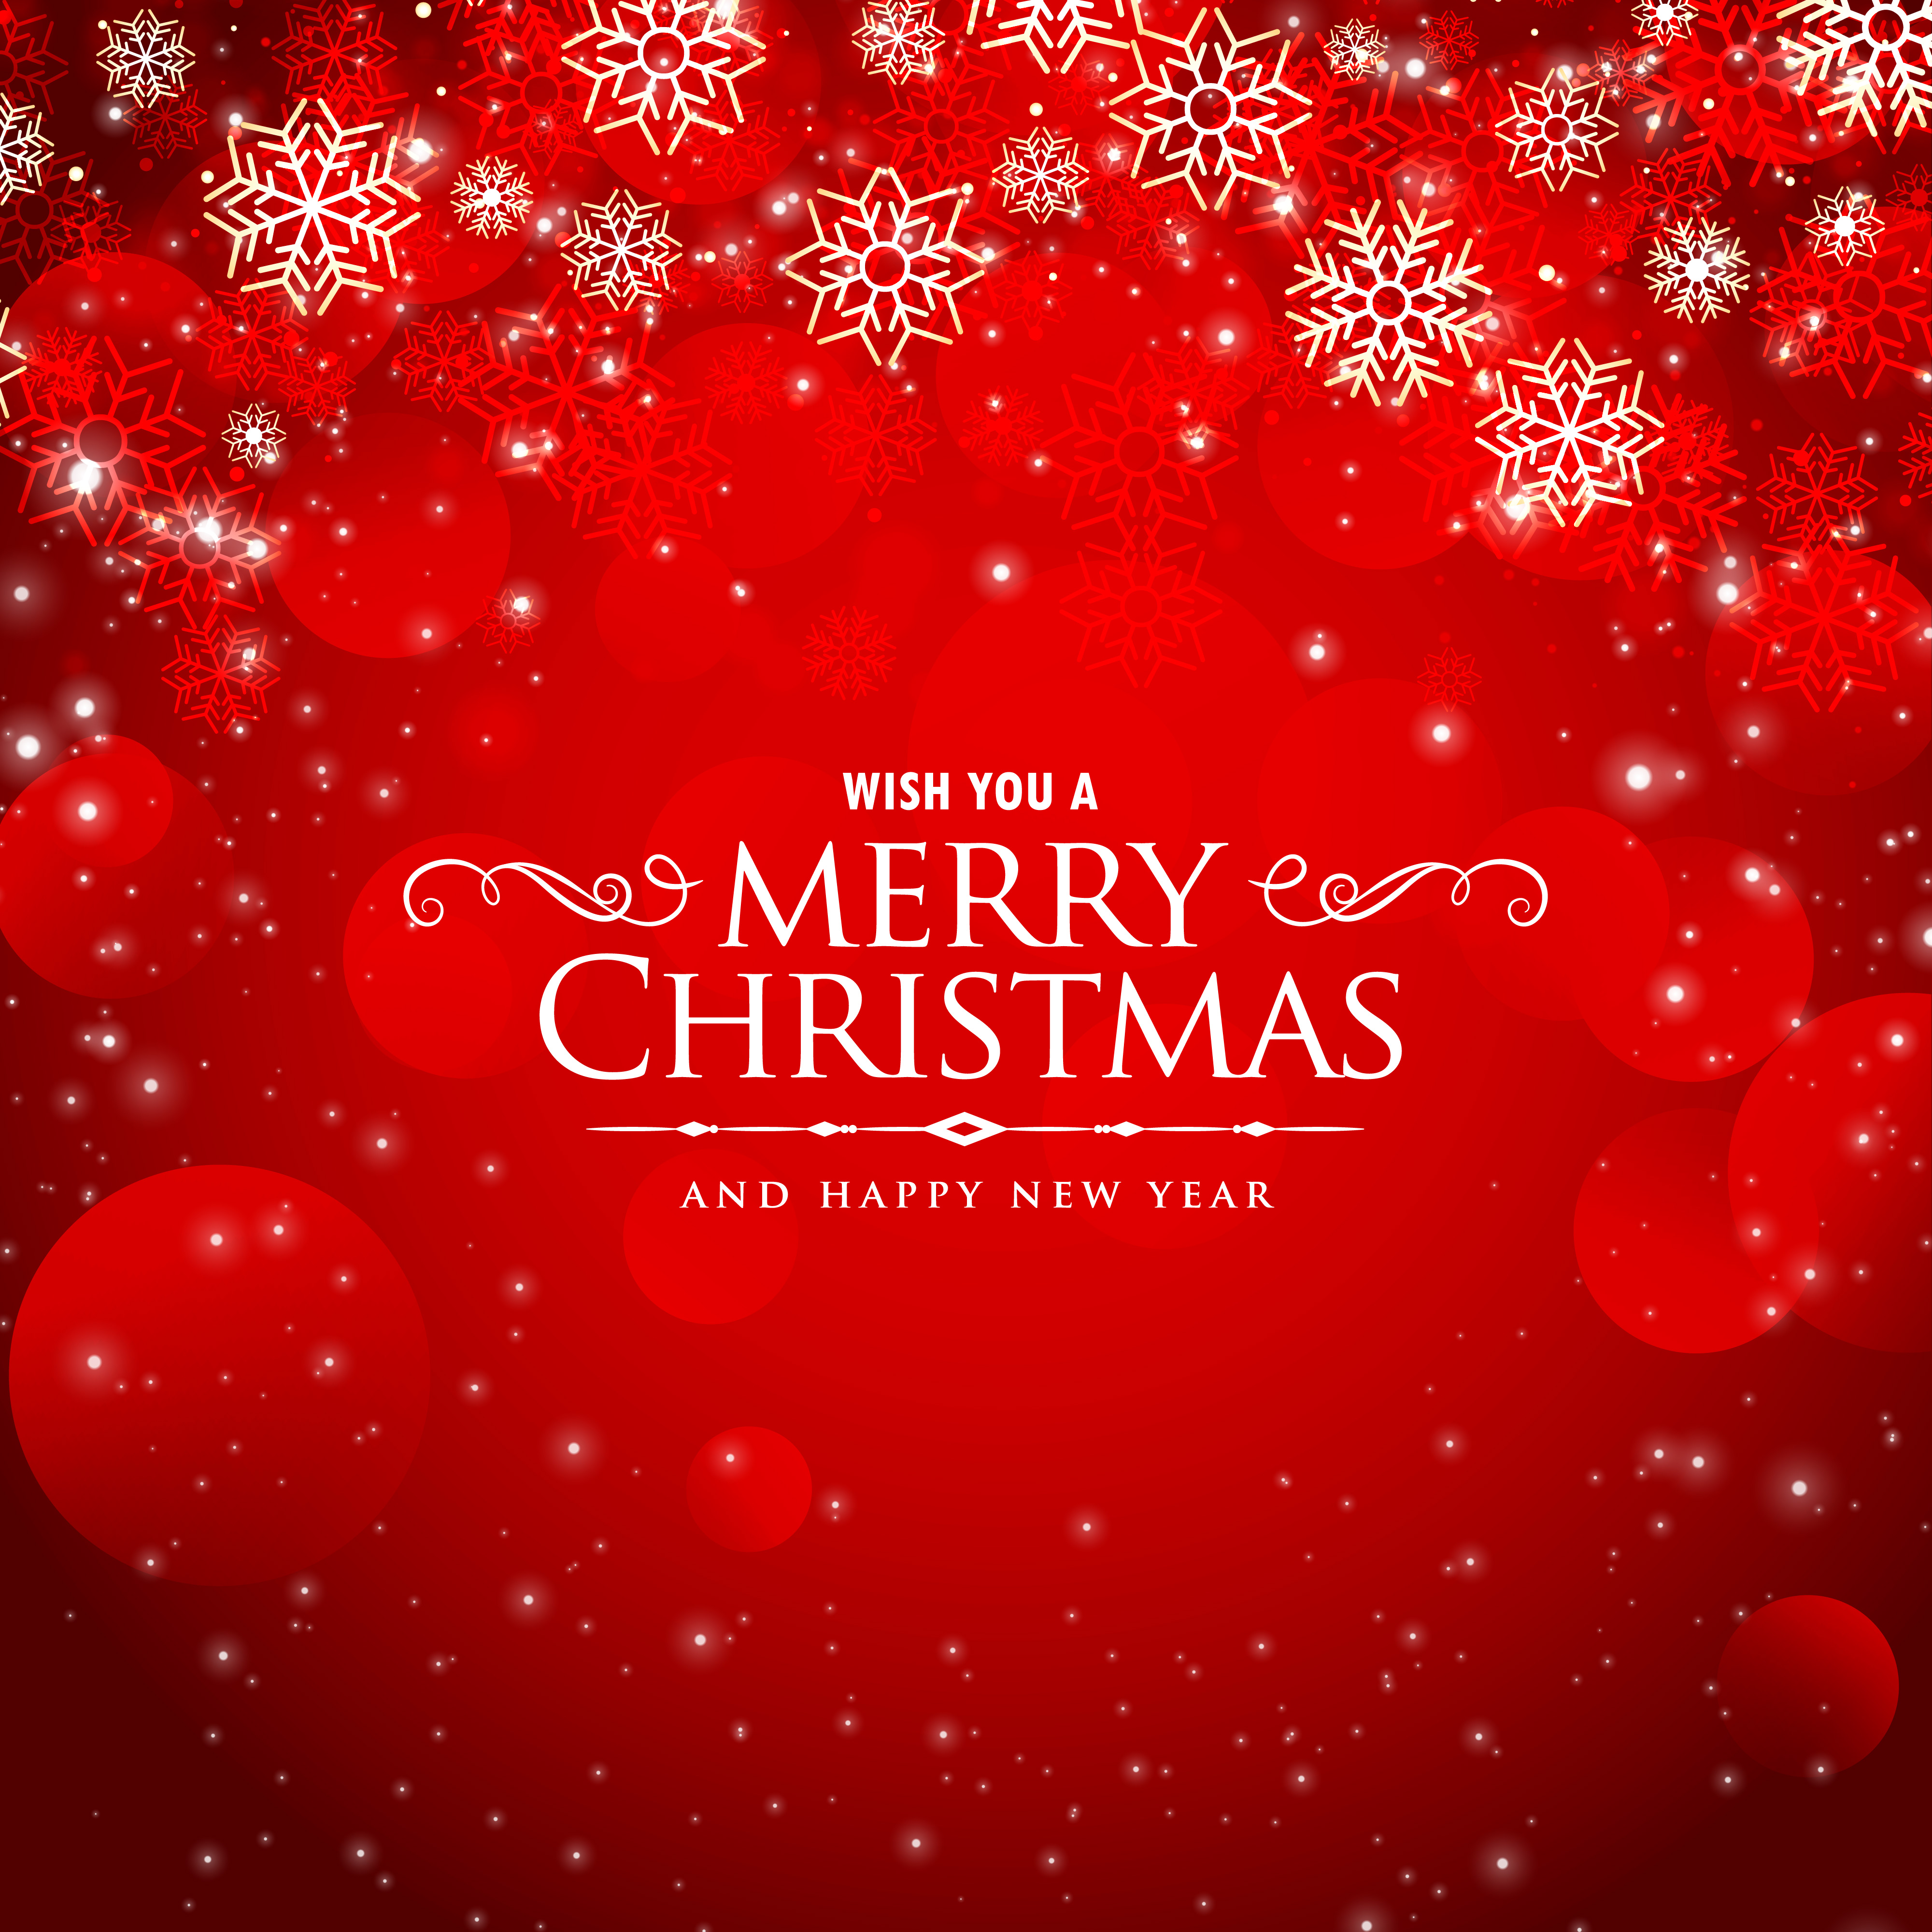 awesome red background for christmas festival download